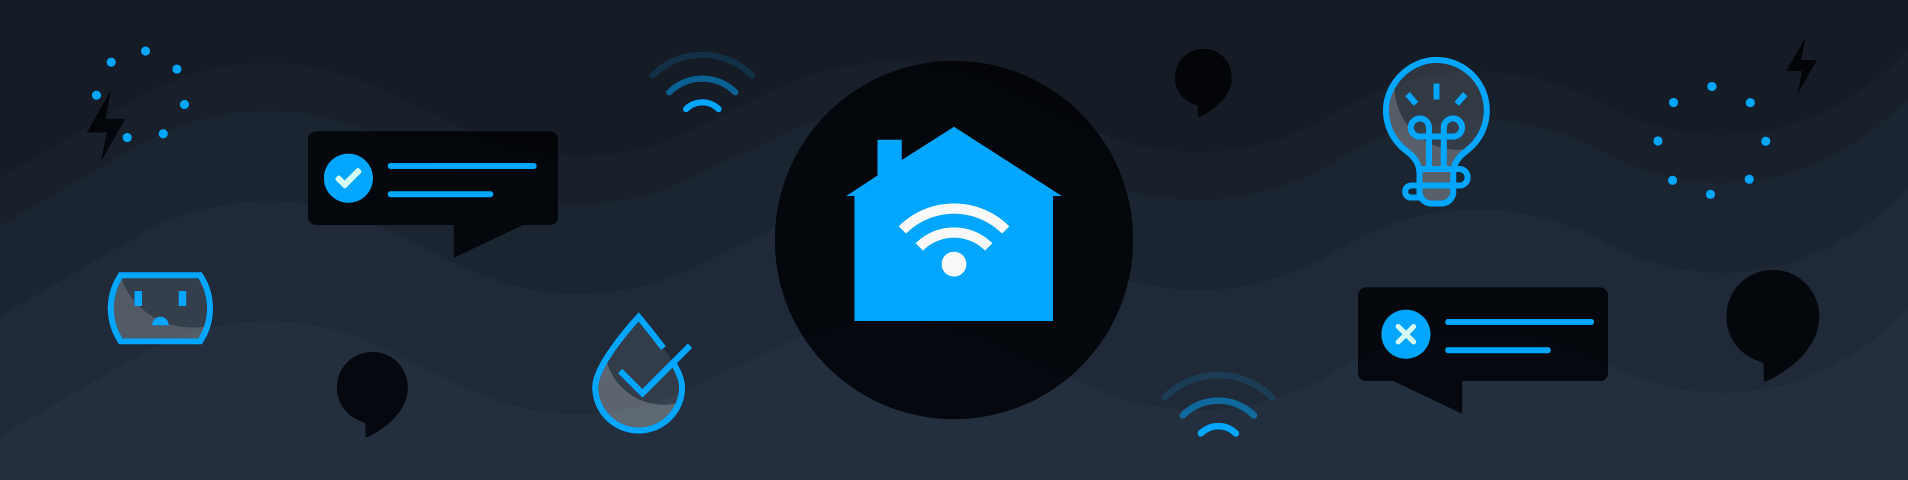 Announcing Contact and Motion Sensor APIs and Integration